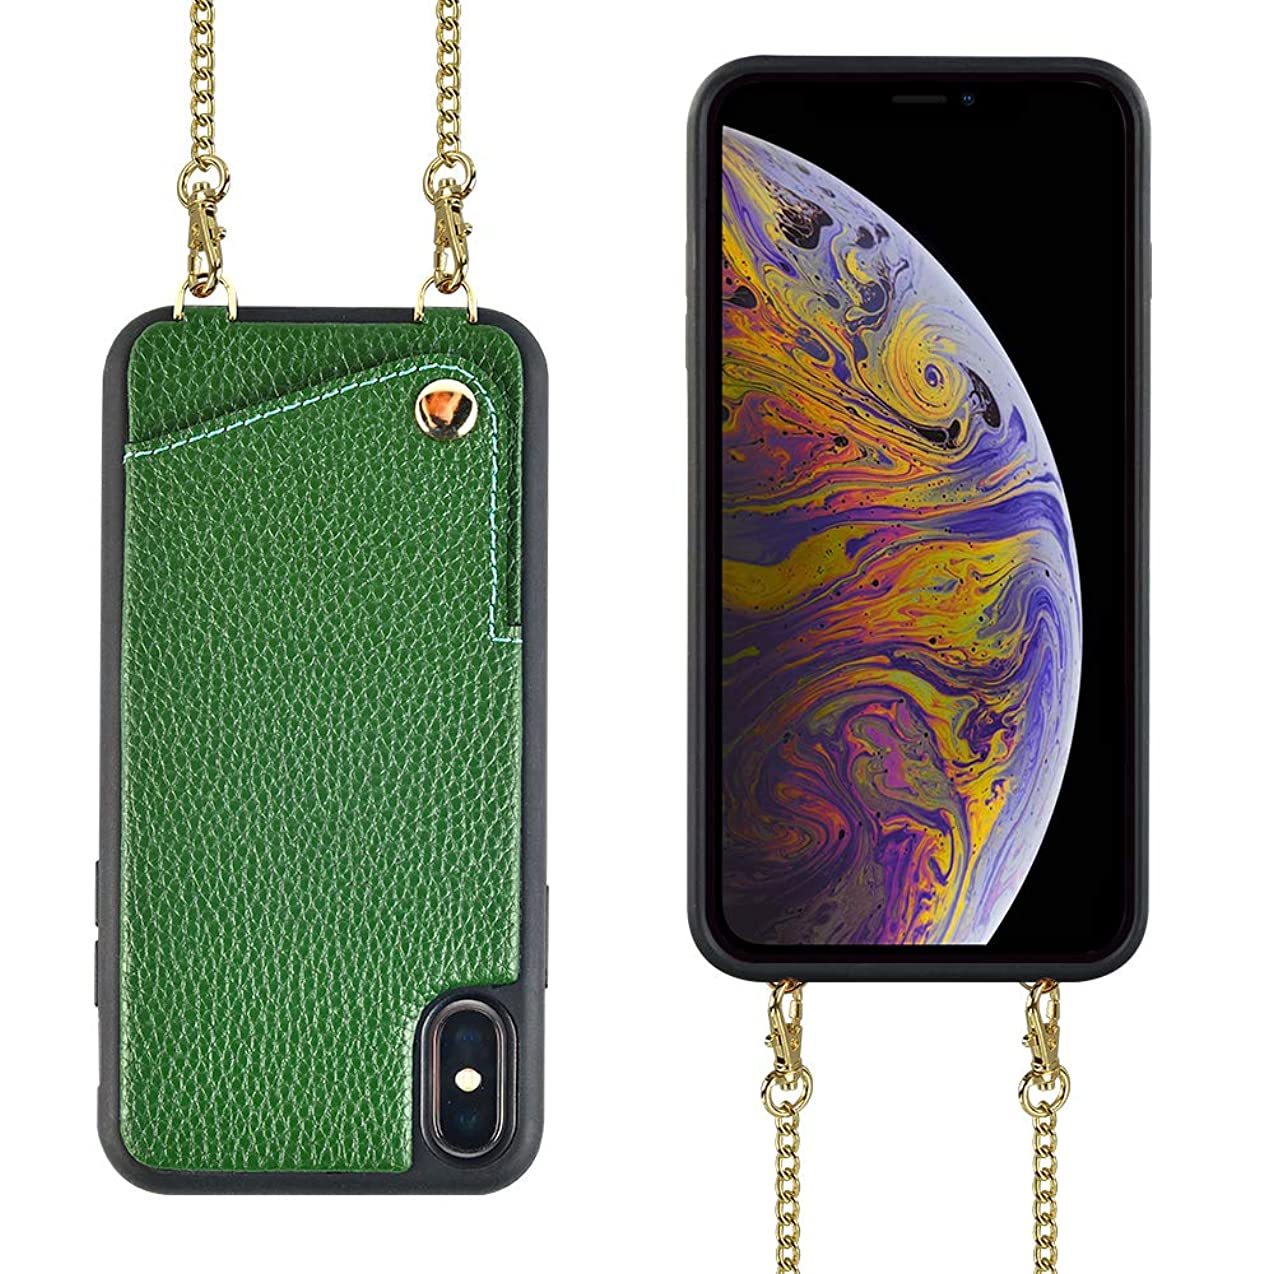 iPhone Xs Wallet Case, iPhone Xs Crossbody Case, JLFCH iPhone X Case with Card Slot Holder Crossbody/Shouder Strap Purse Handbag Case for Apple iPhone X/XS 5.8 inch - Dark Green ndqqdmdqwuka6095